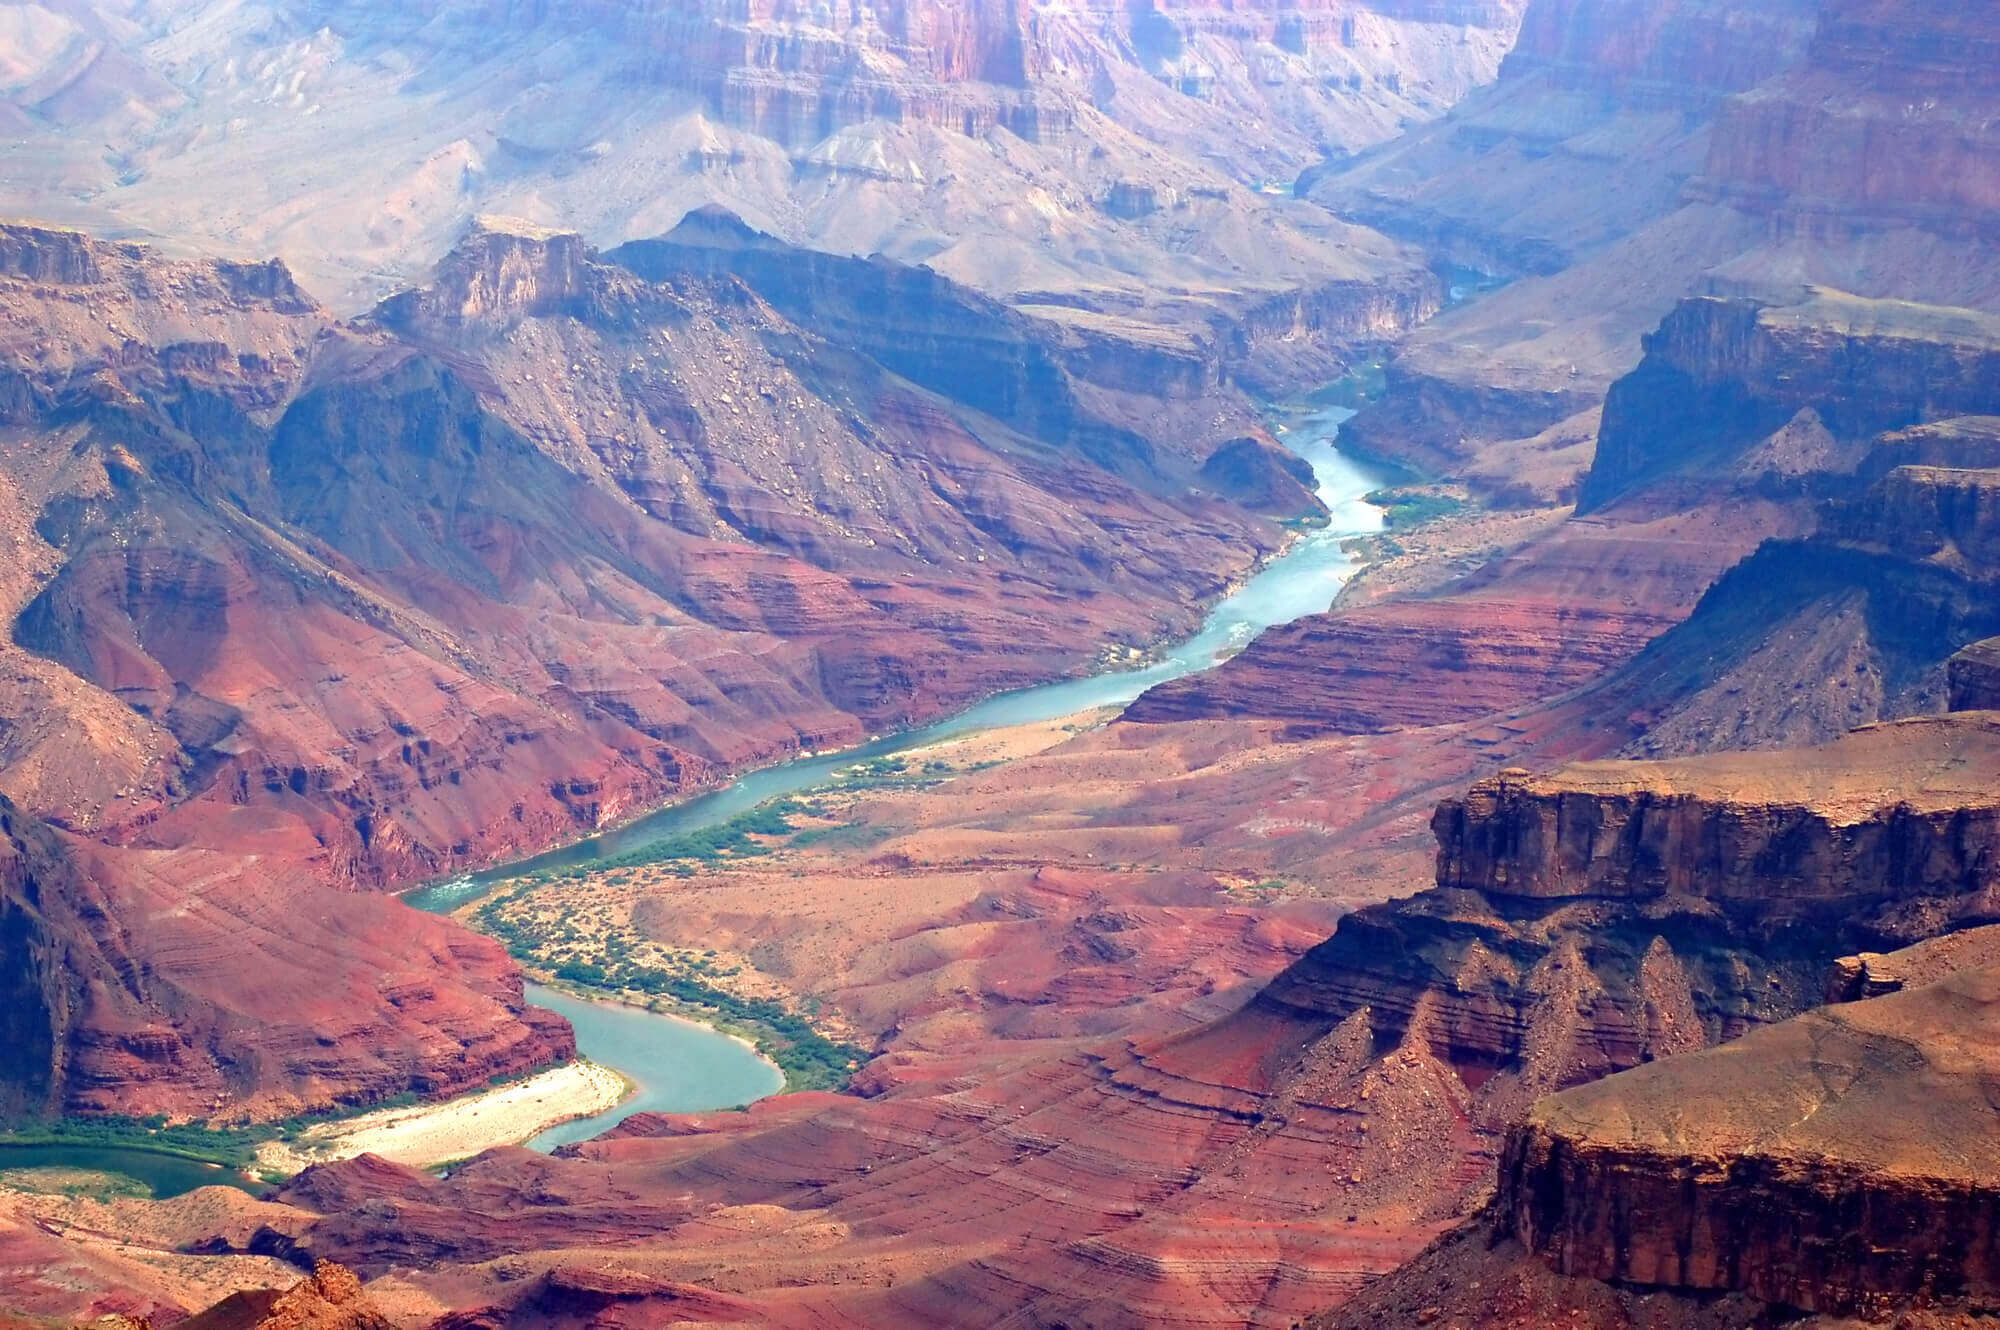 What cities are close to the Grand Canyon?